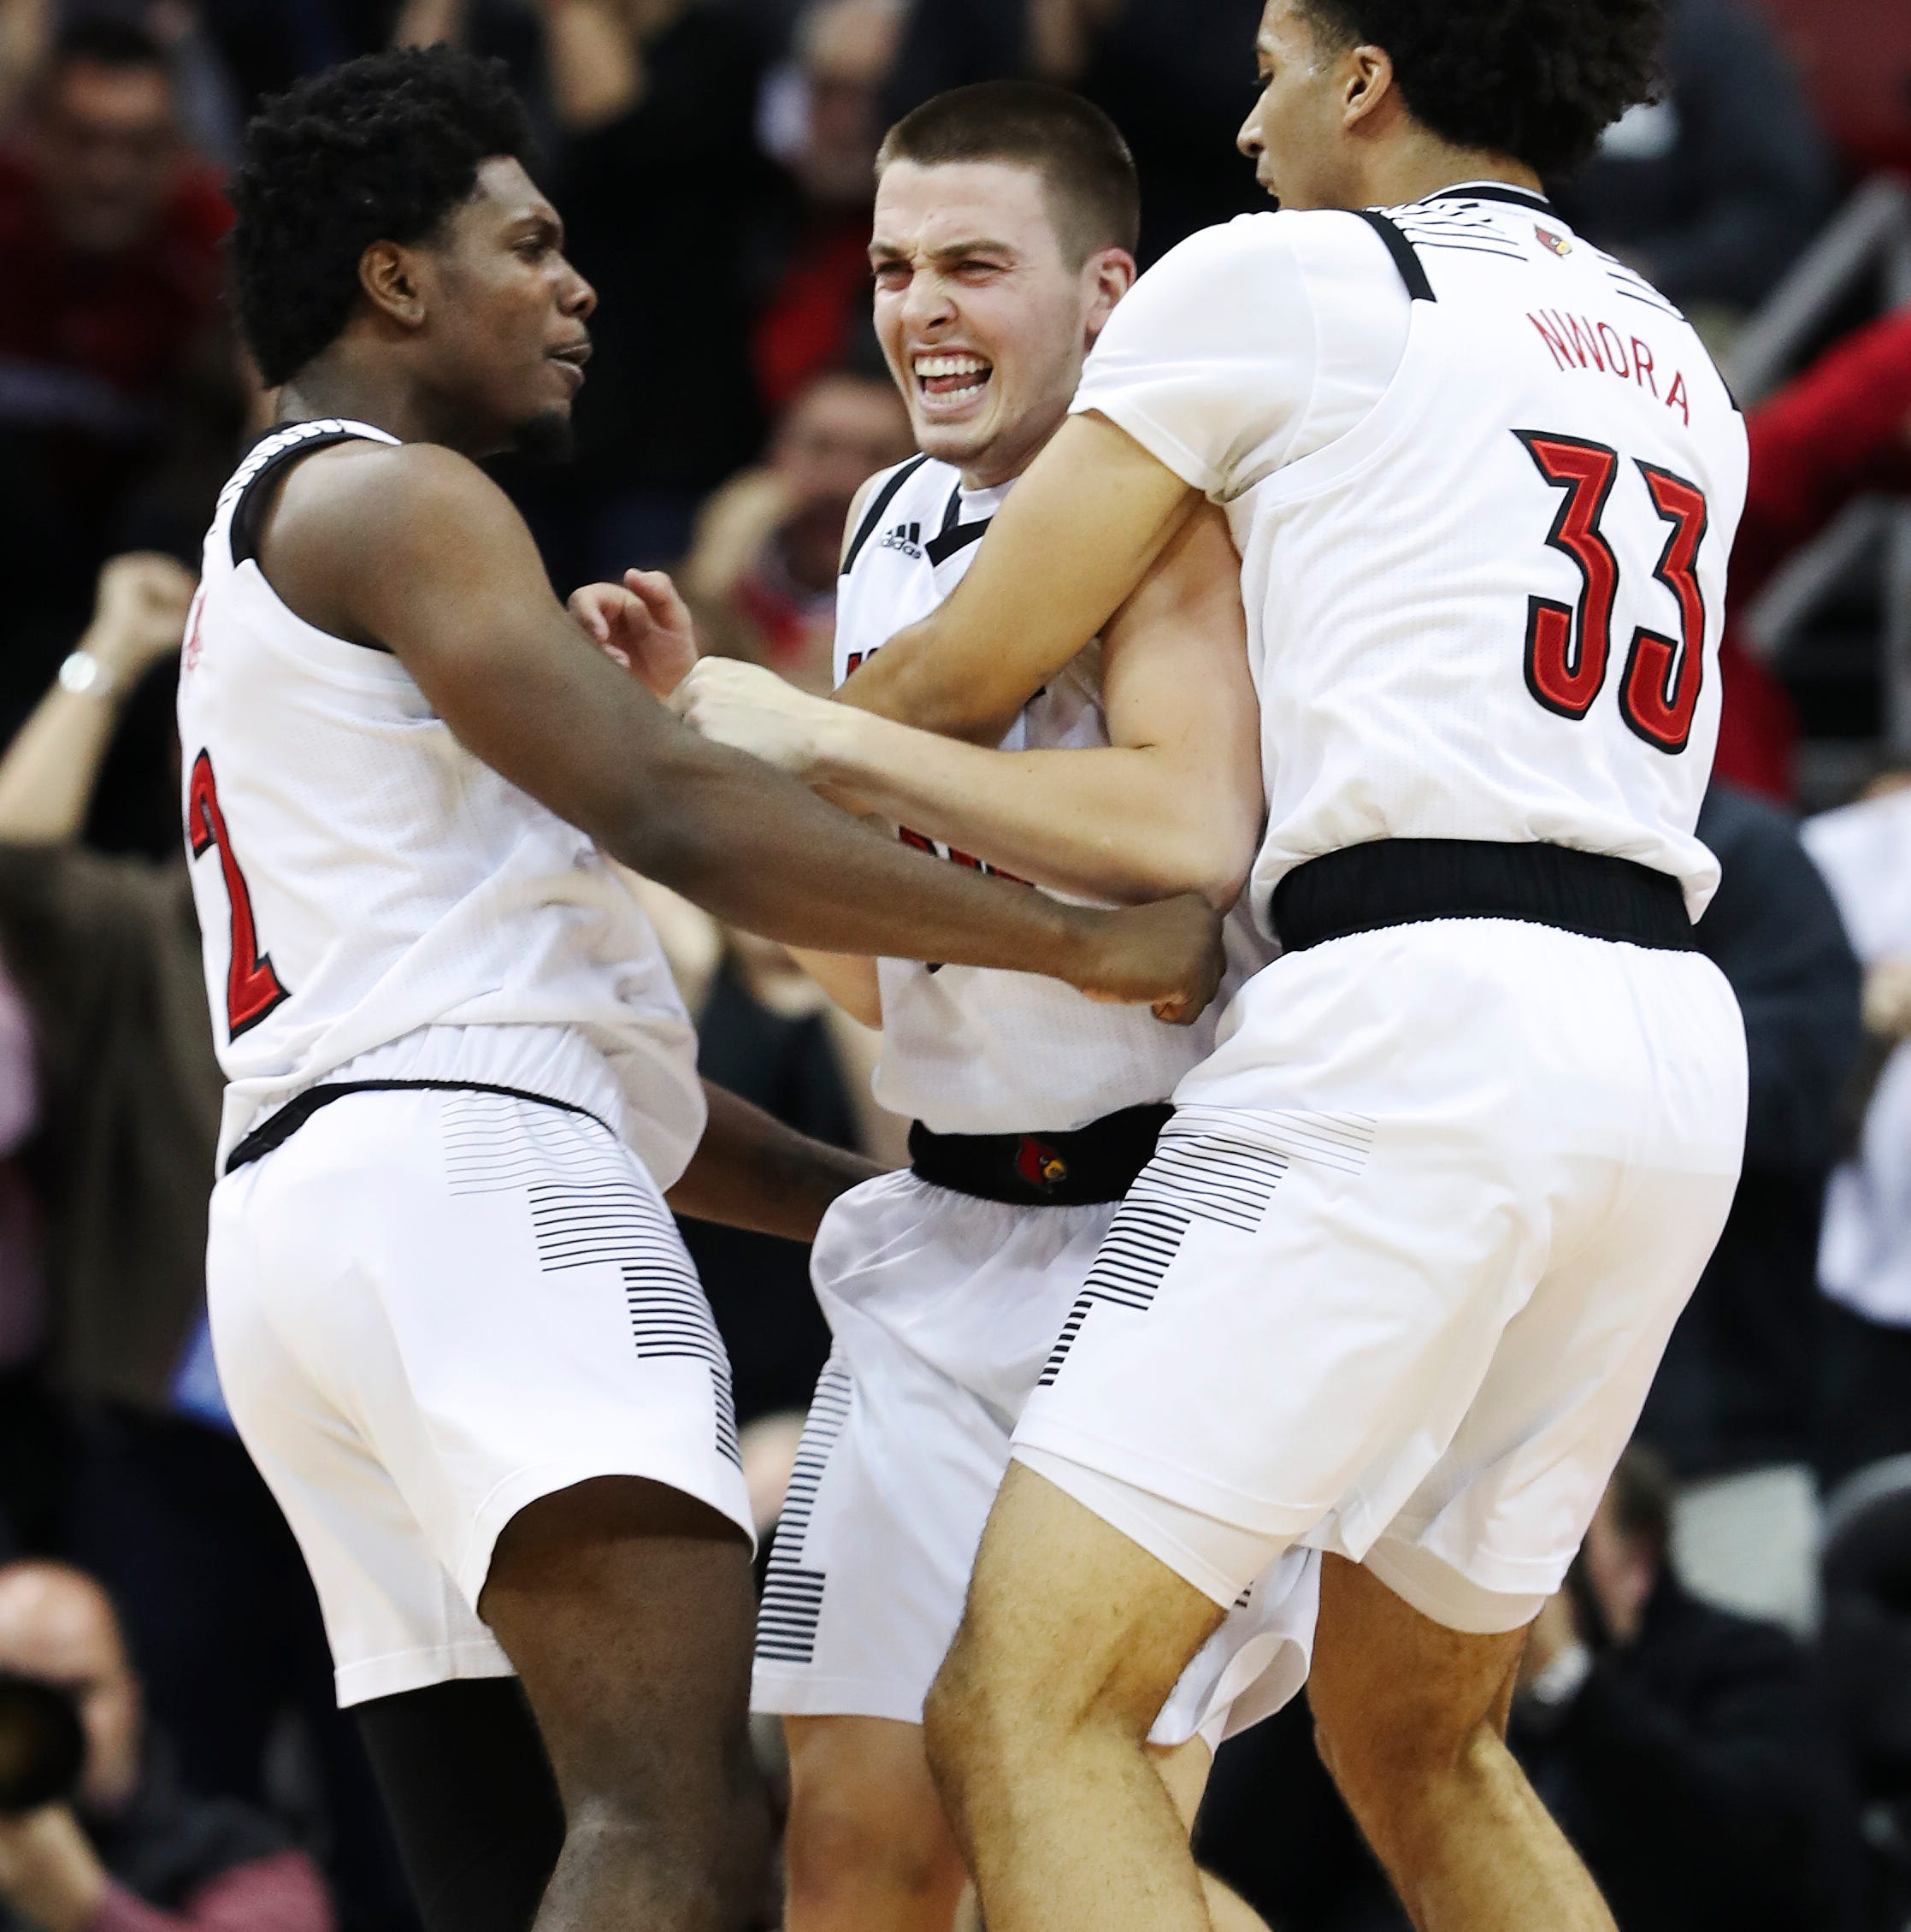 Louisville basketball won't let inexperience hold it back in NCAA Tournament